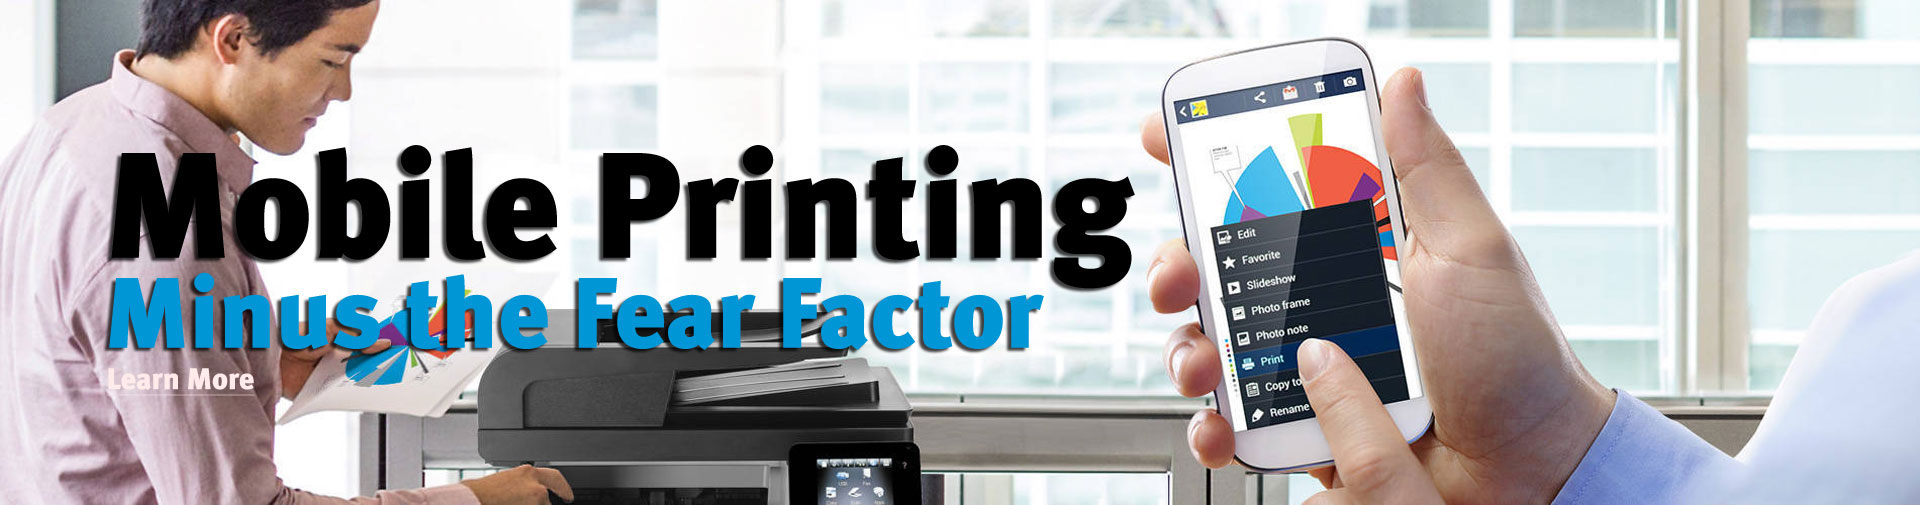 Mobile Printing Minus the Fear Factor